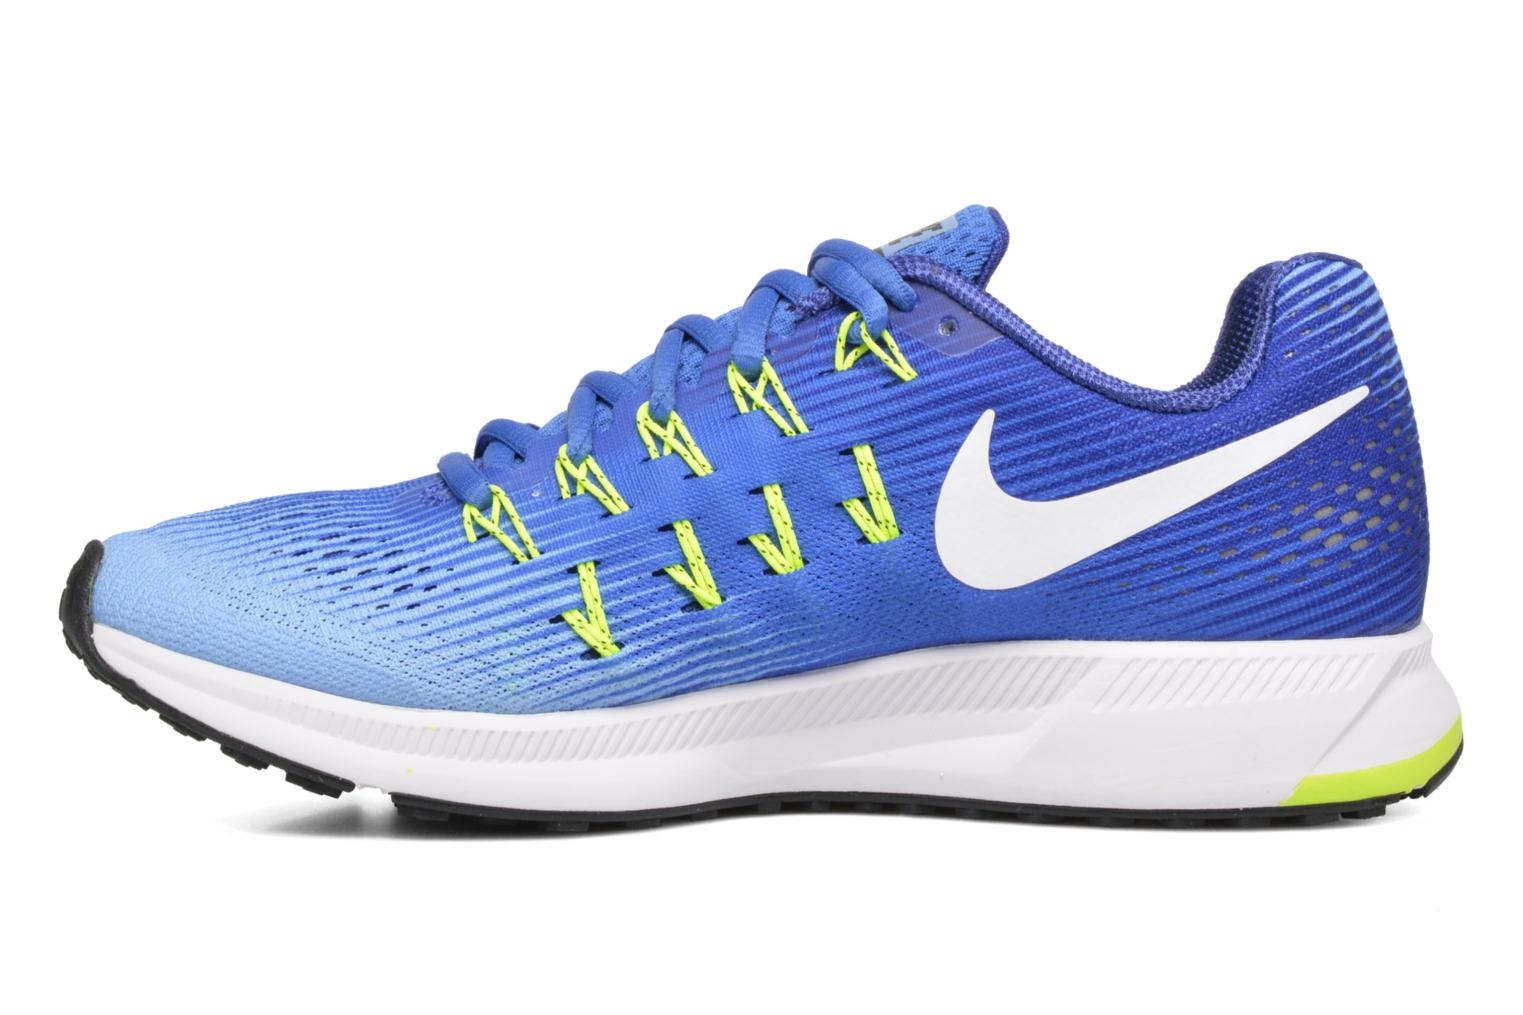 Wmns Nike Air Zoom Pegasus 33 Medium Blue/White-Aluminum-Deep Night